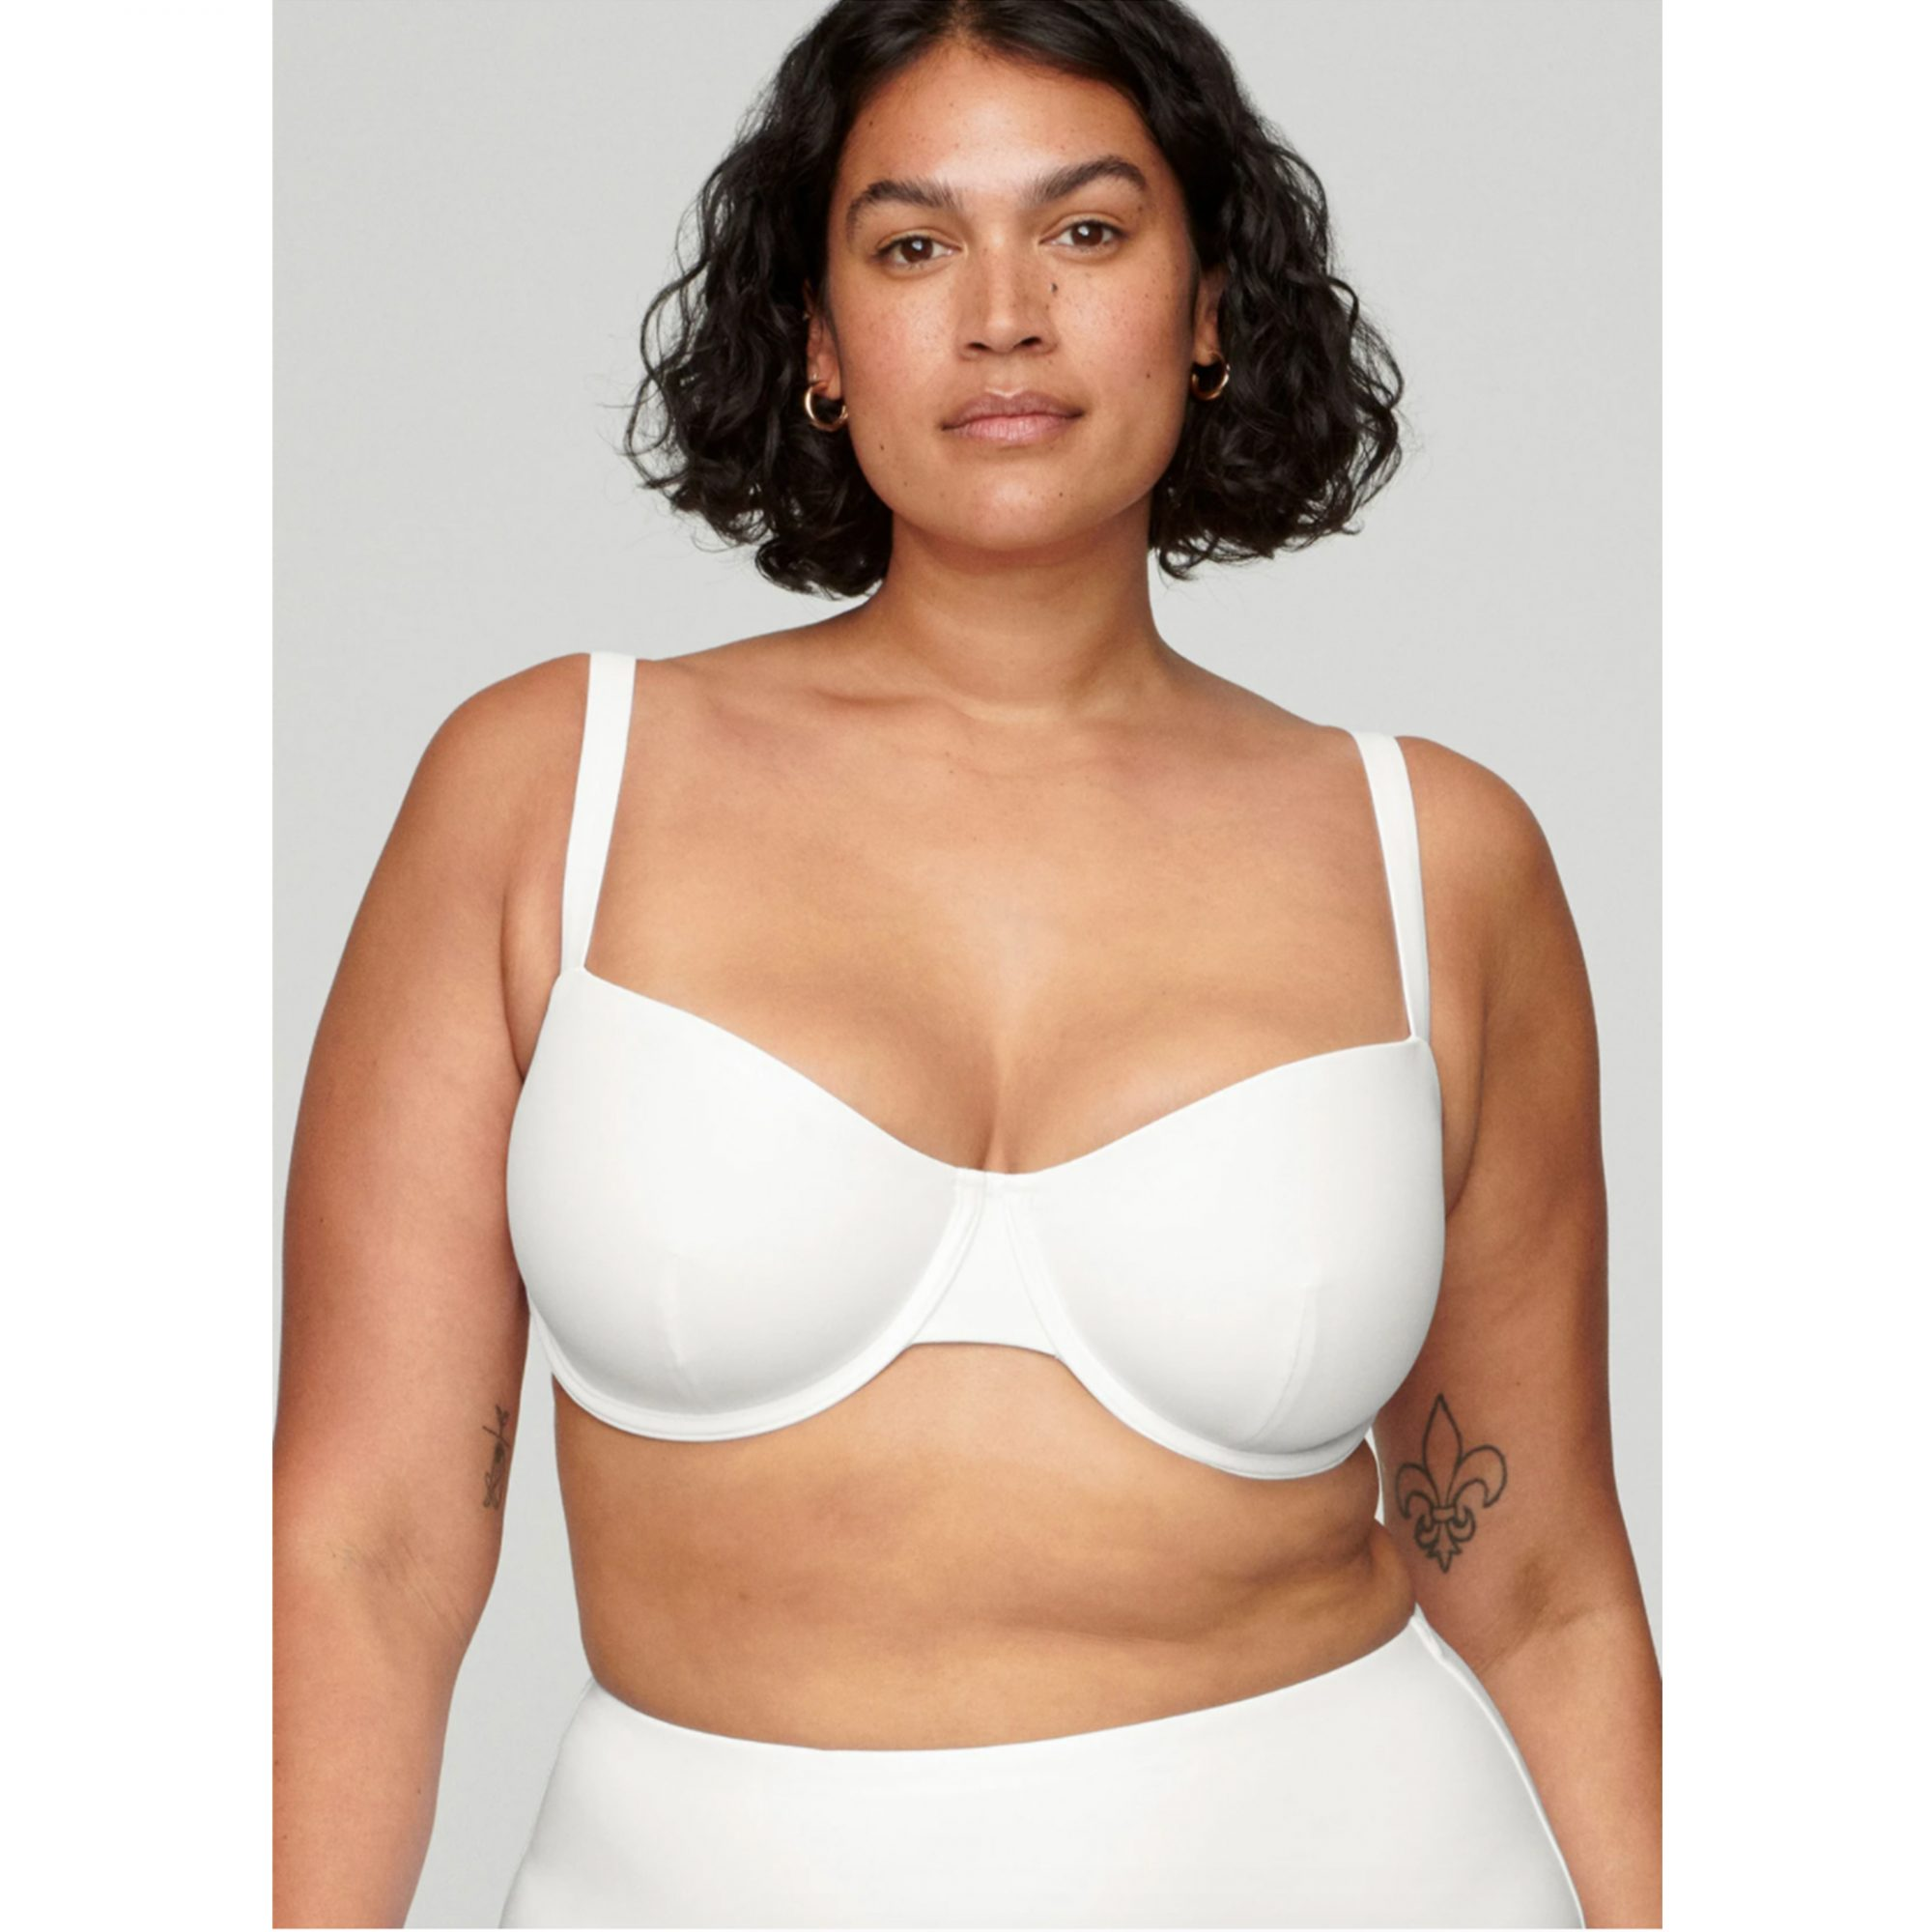 cuup-high-waisted-swim, plus-size-woman-swimsuit